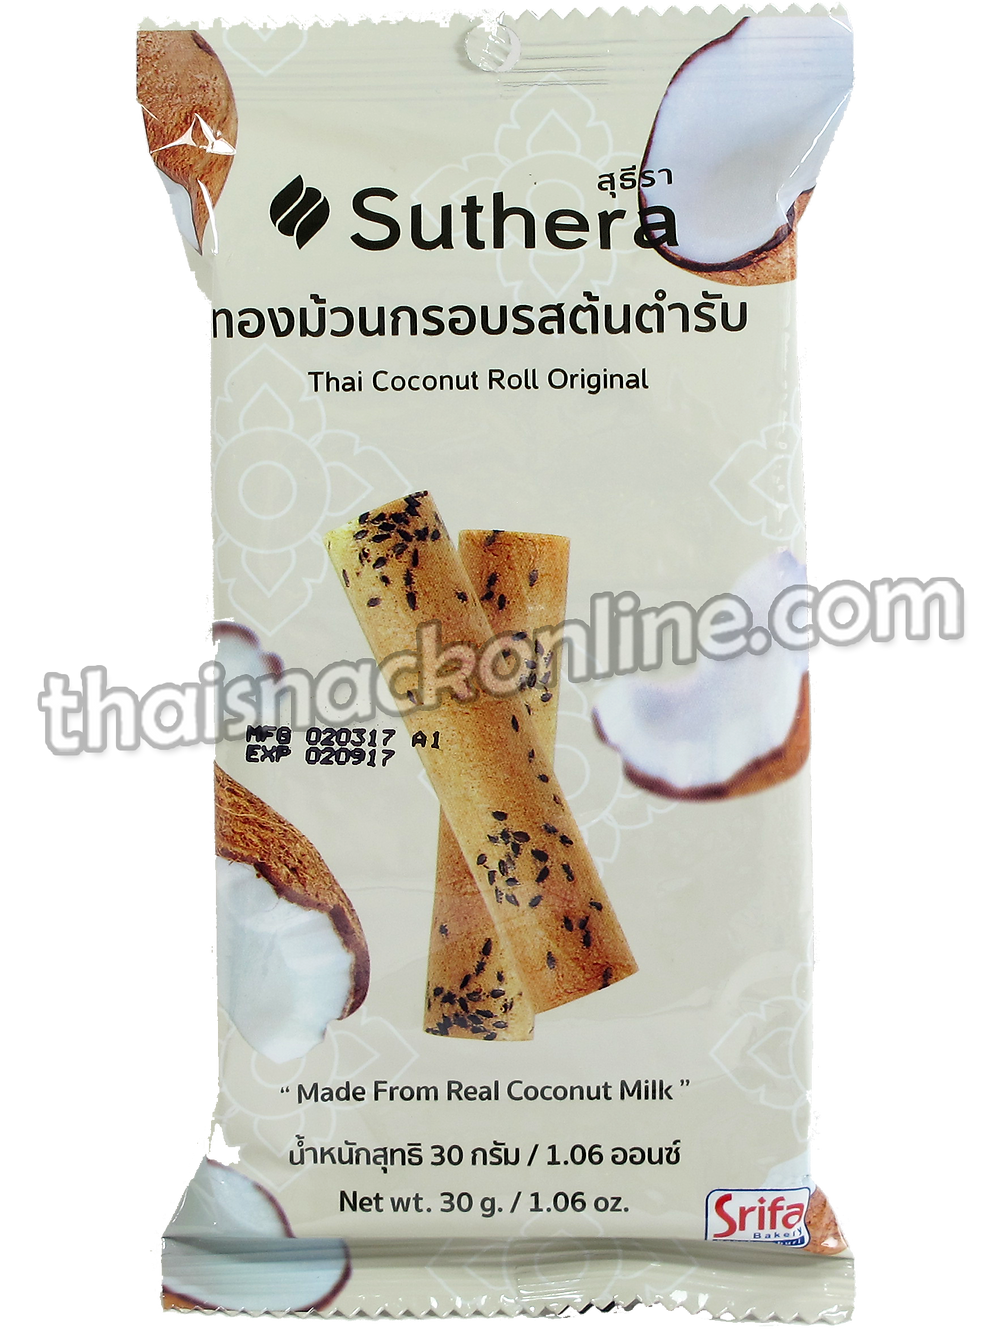 Suthera - Thai Coconut Roll Original